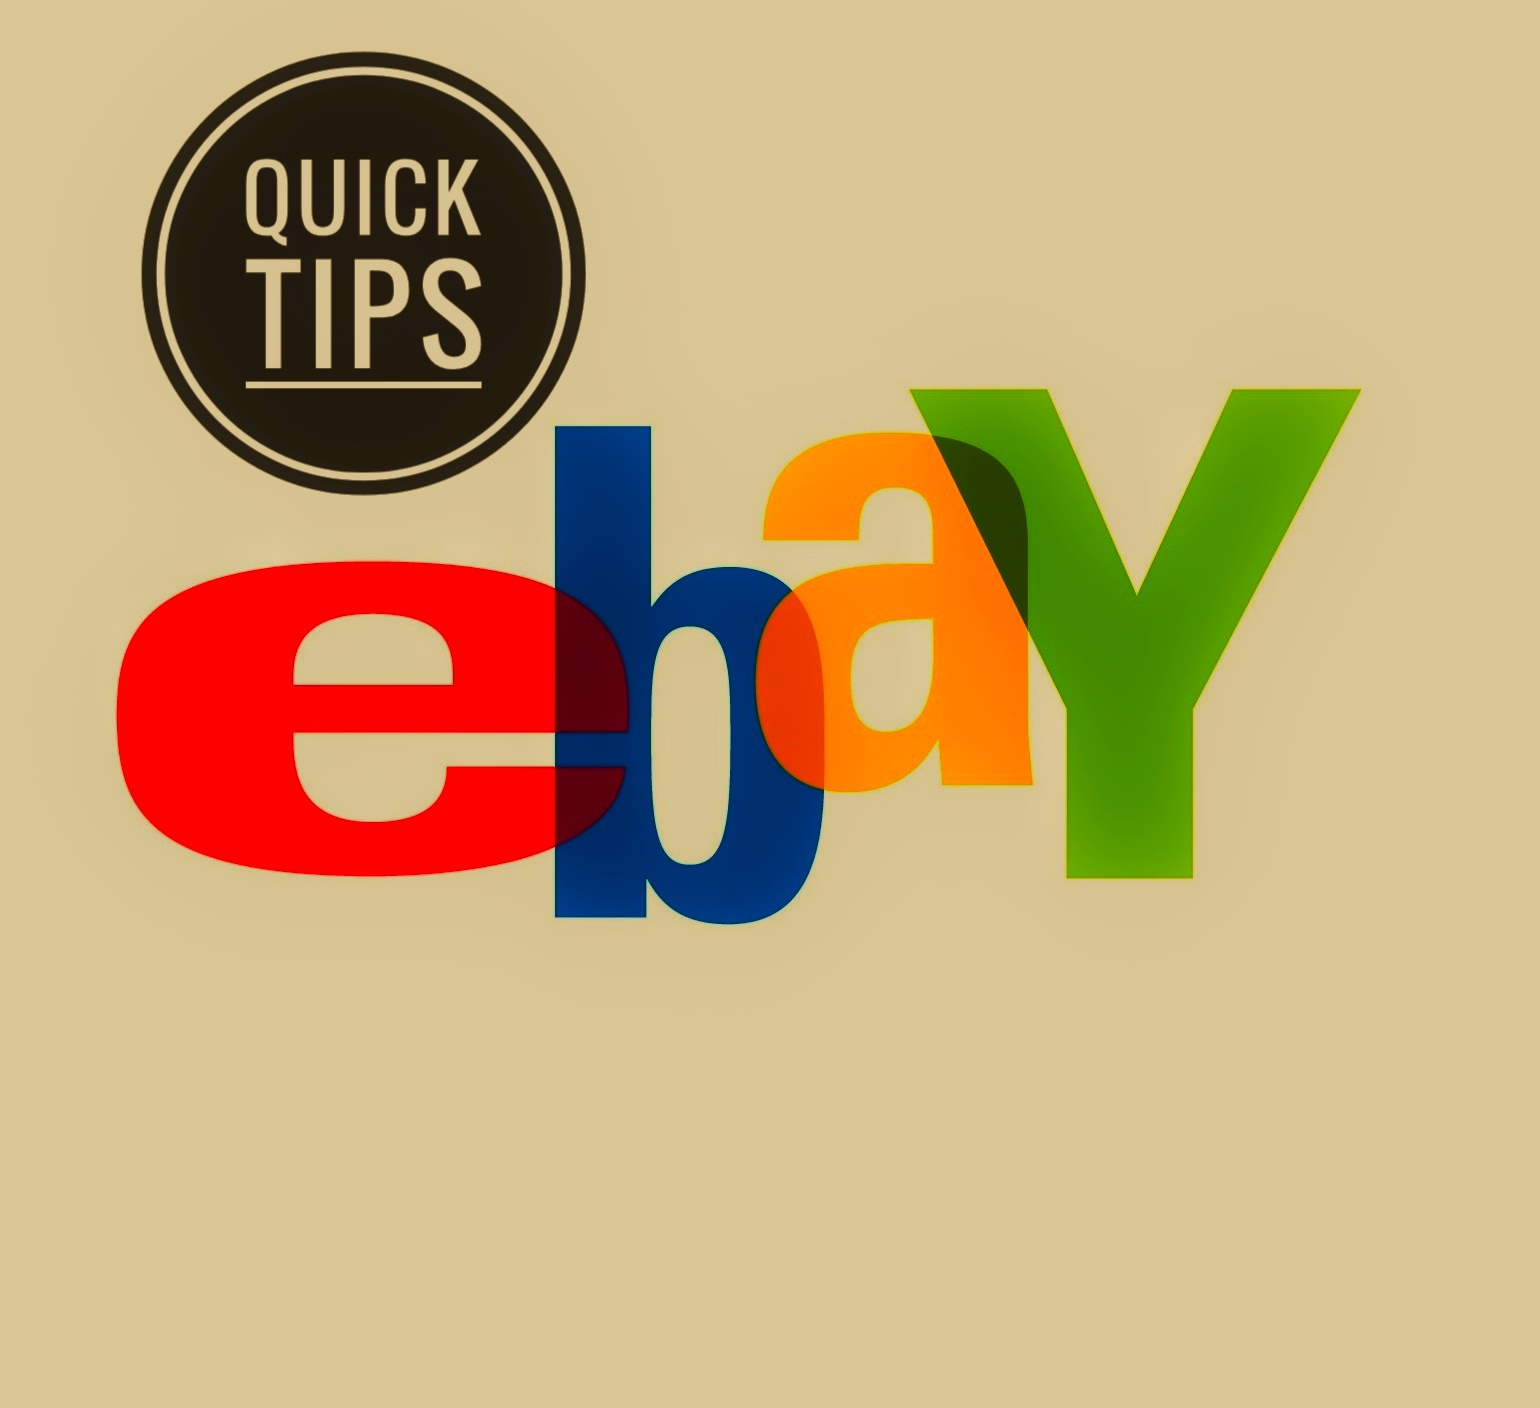 Health Life More Quick Ebay Selling Tips For Beginners In 2020